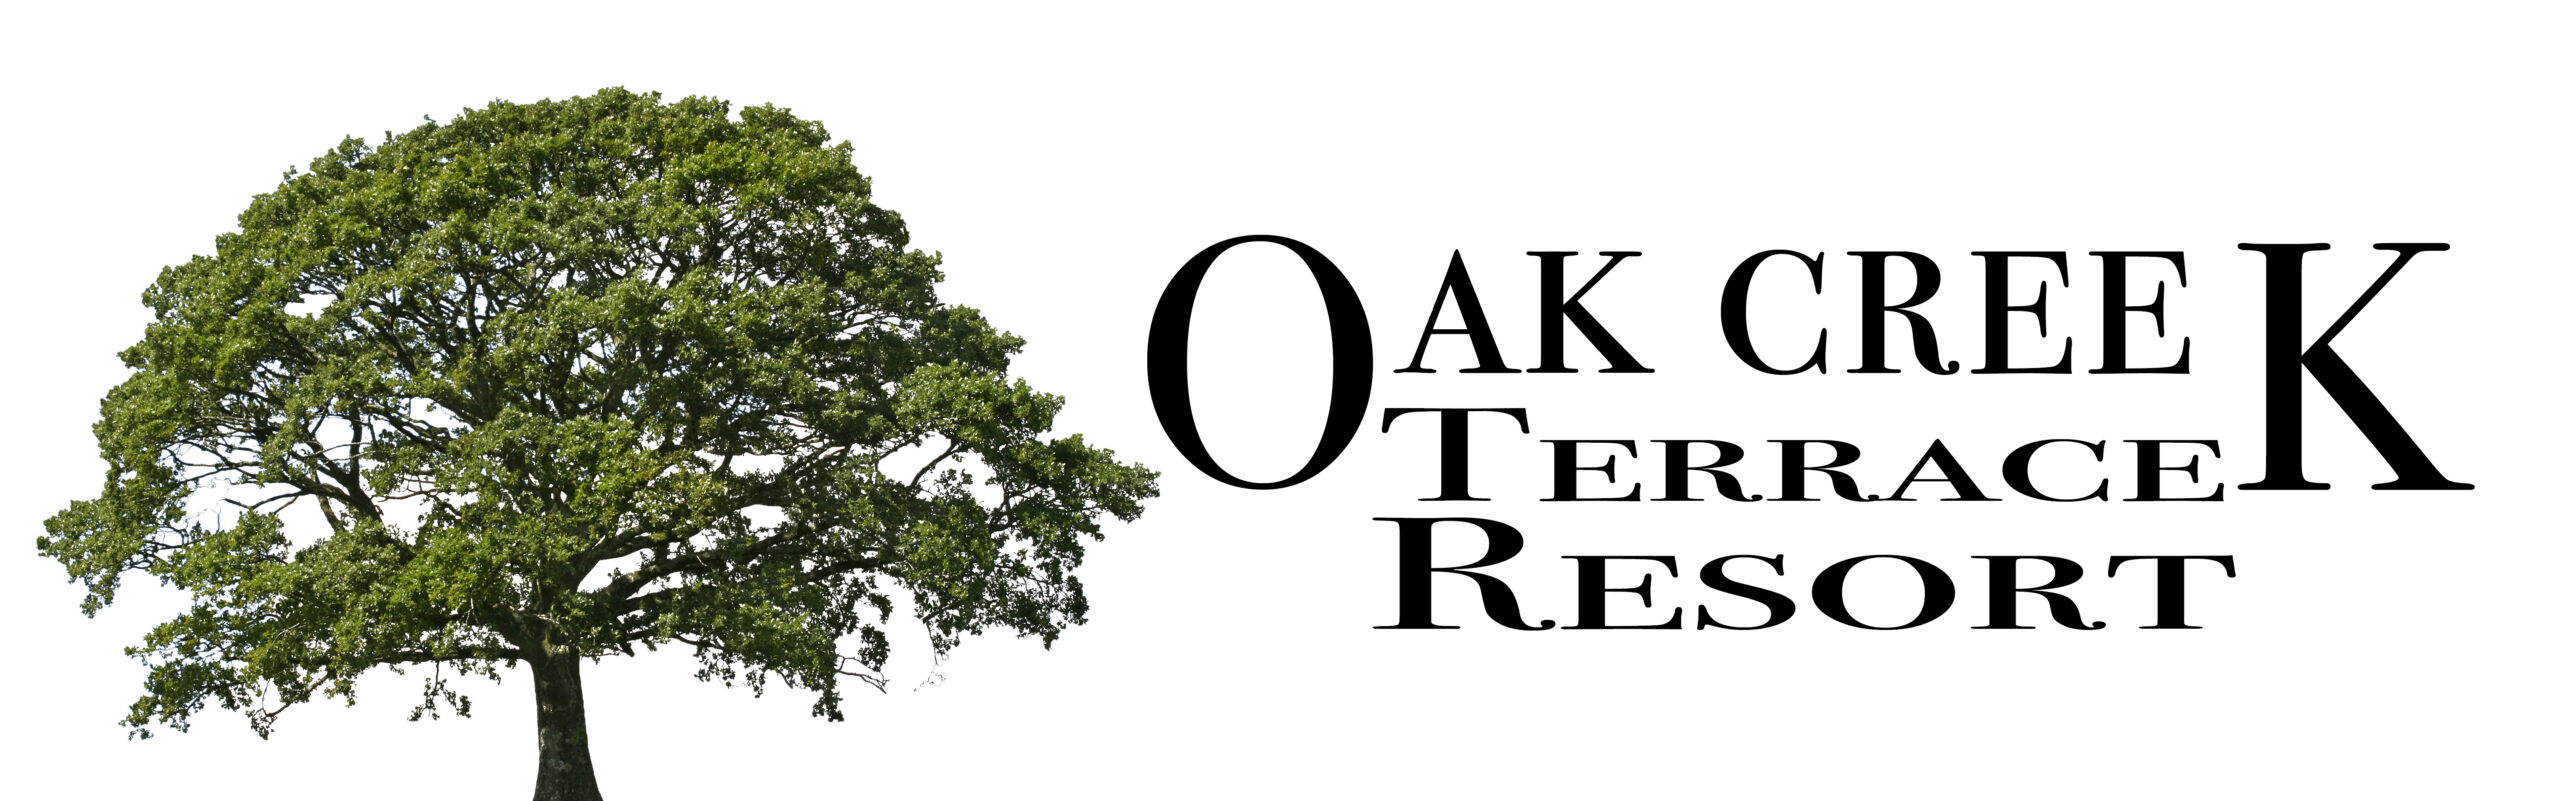 The Oak Creek Terrace